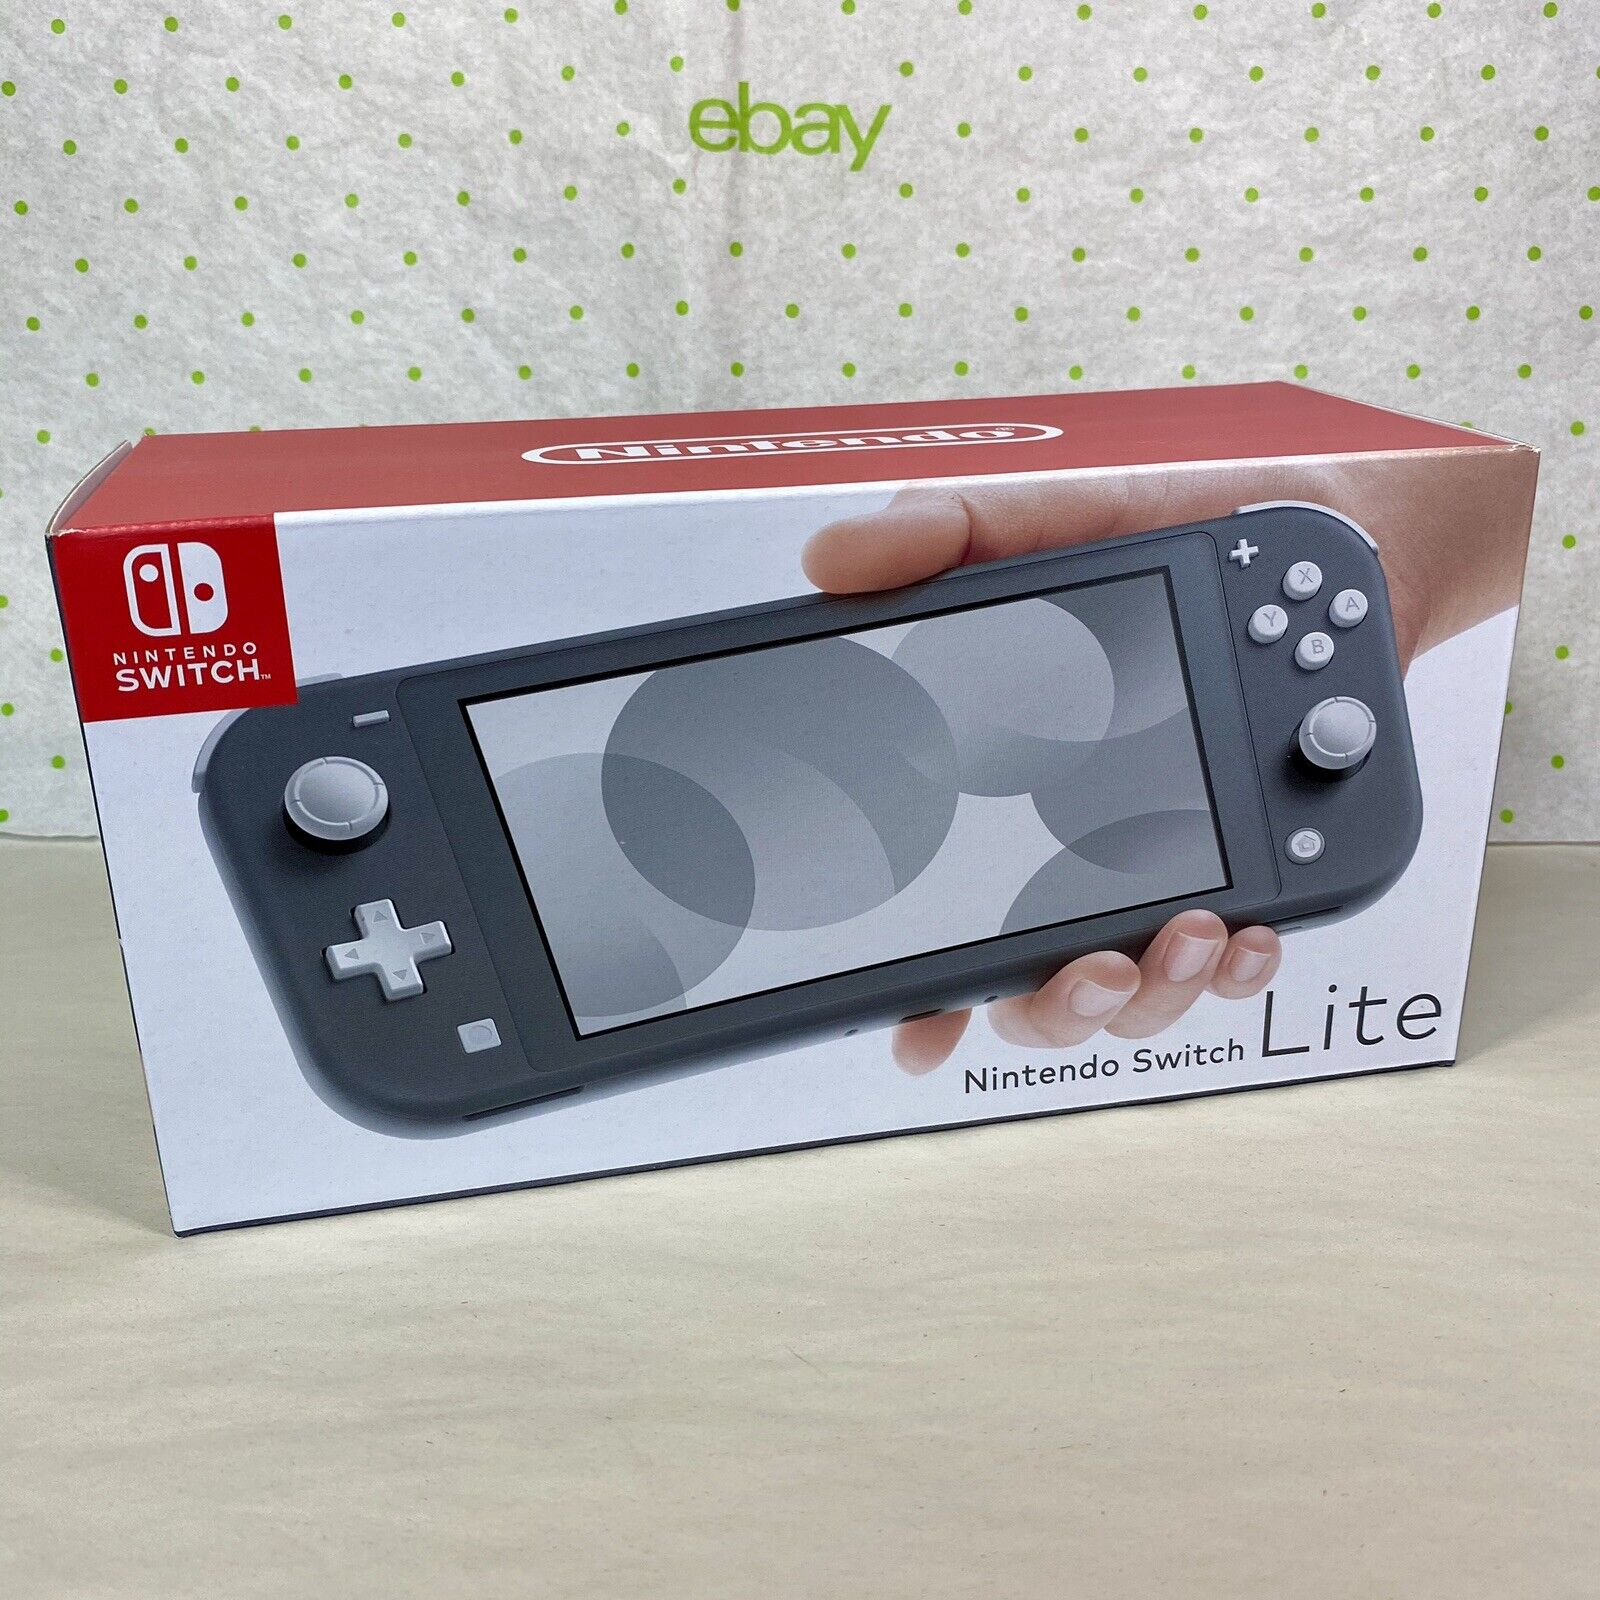 Nintendo Switch Lite Gray Handheld Video Game Console Brand New Sealed Grey HTF